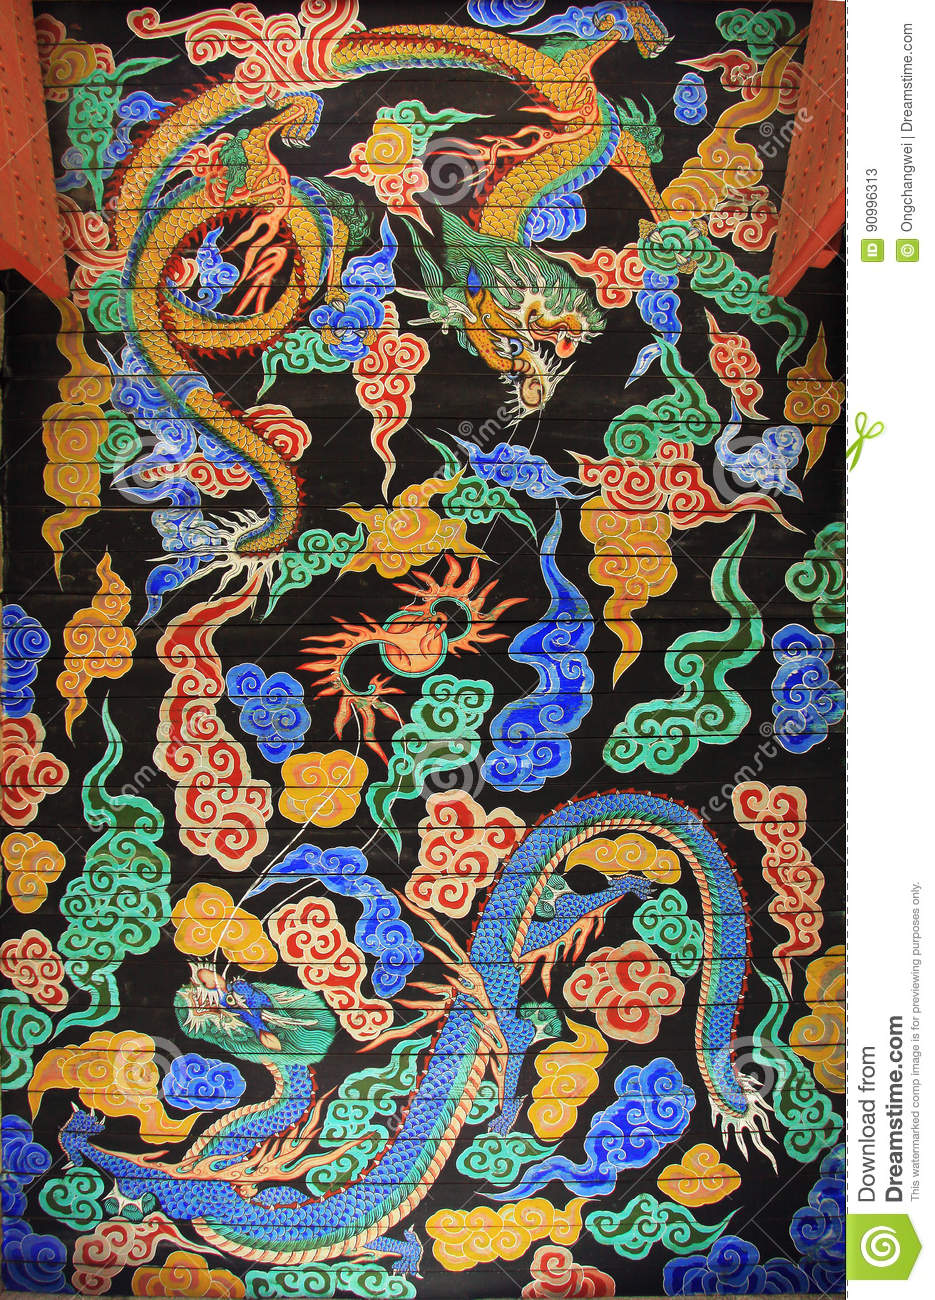 Coreia Dragon Painting